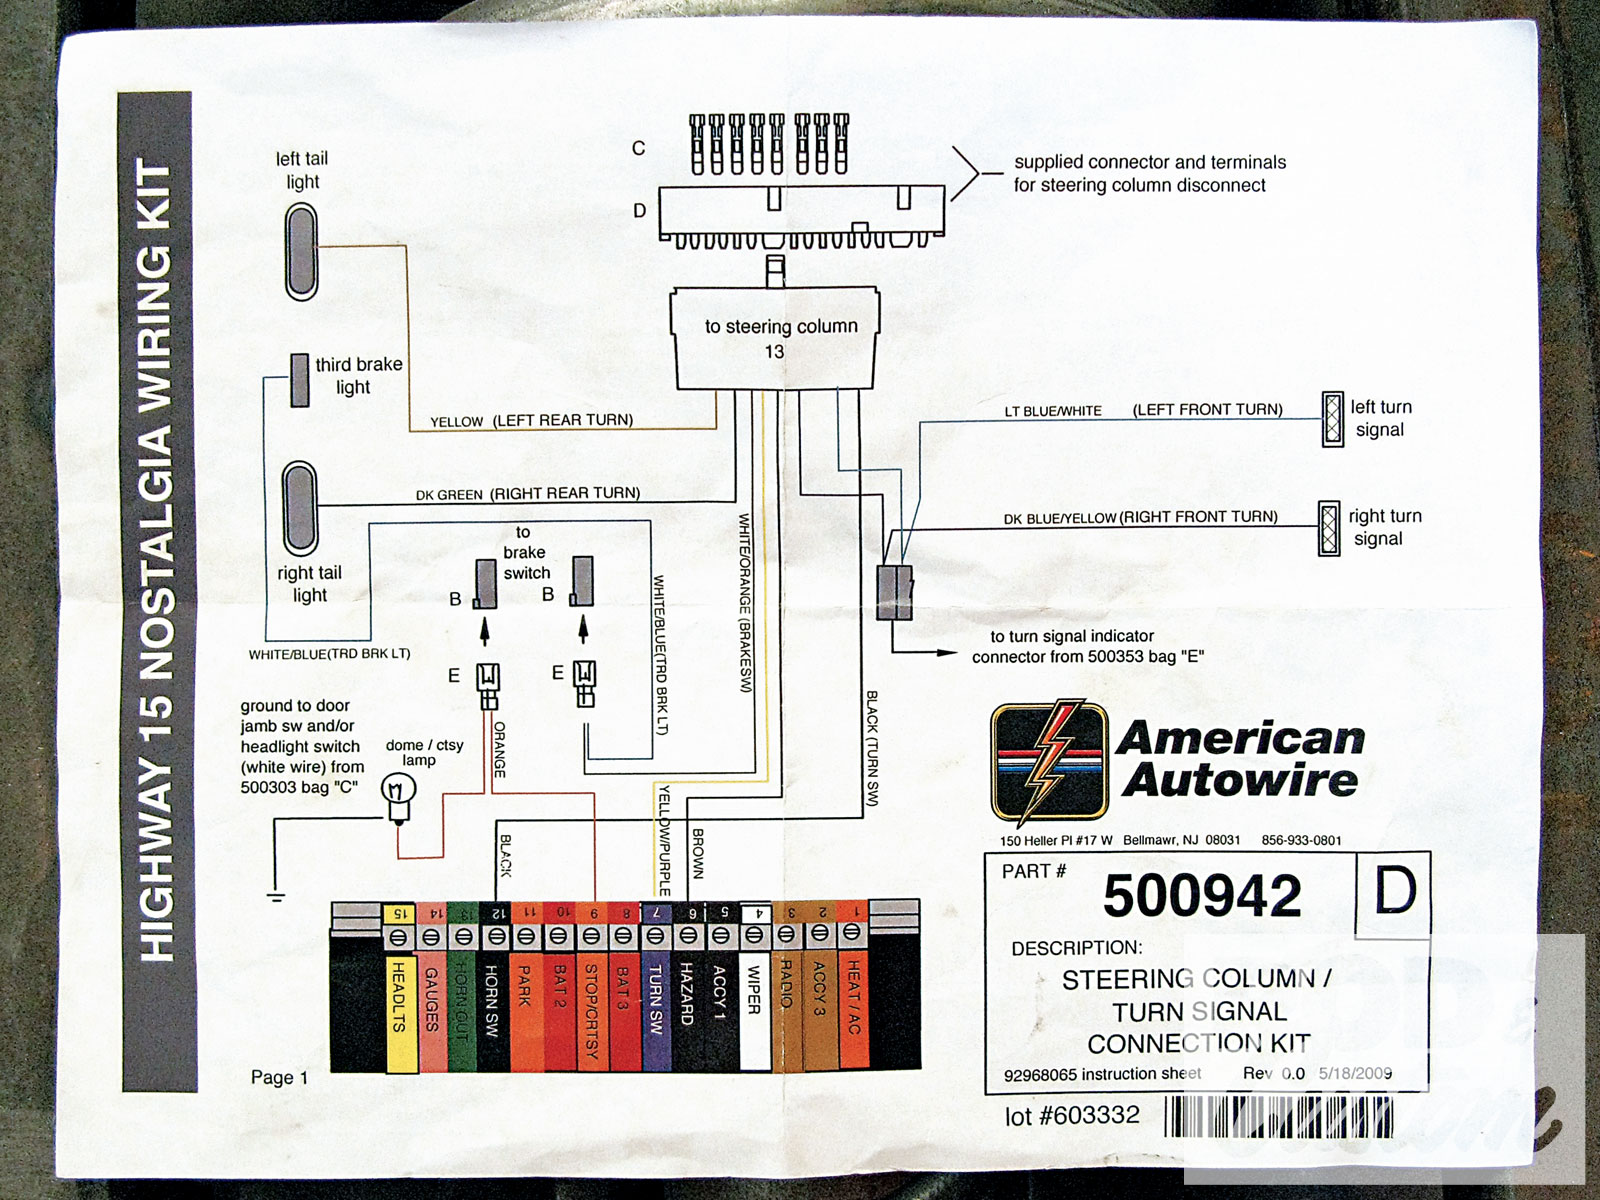 Mustang Steering Column Wiring Diagram Archive Of Automotive 69 Dodge Dart 74 Auto Electrical Rh Doesitsuit Me 1966